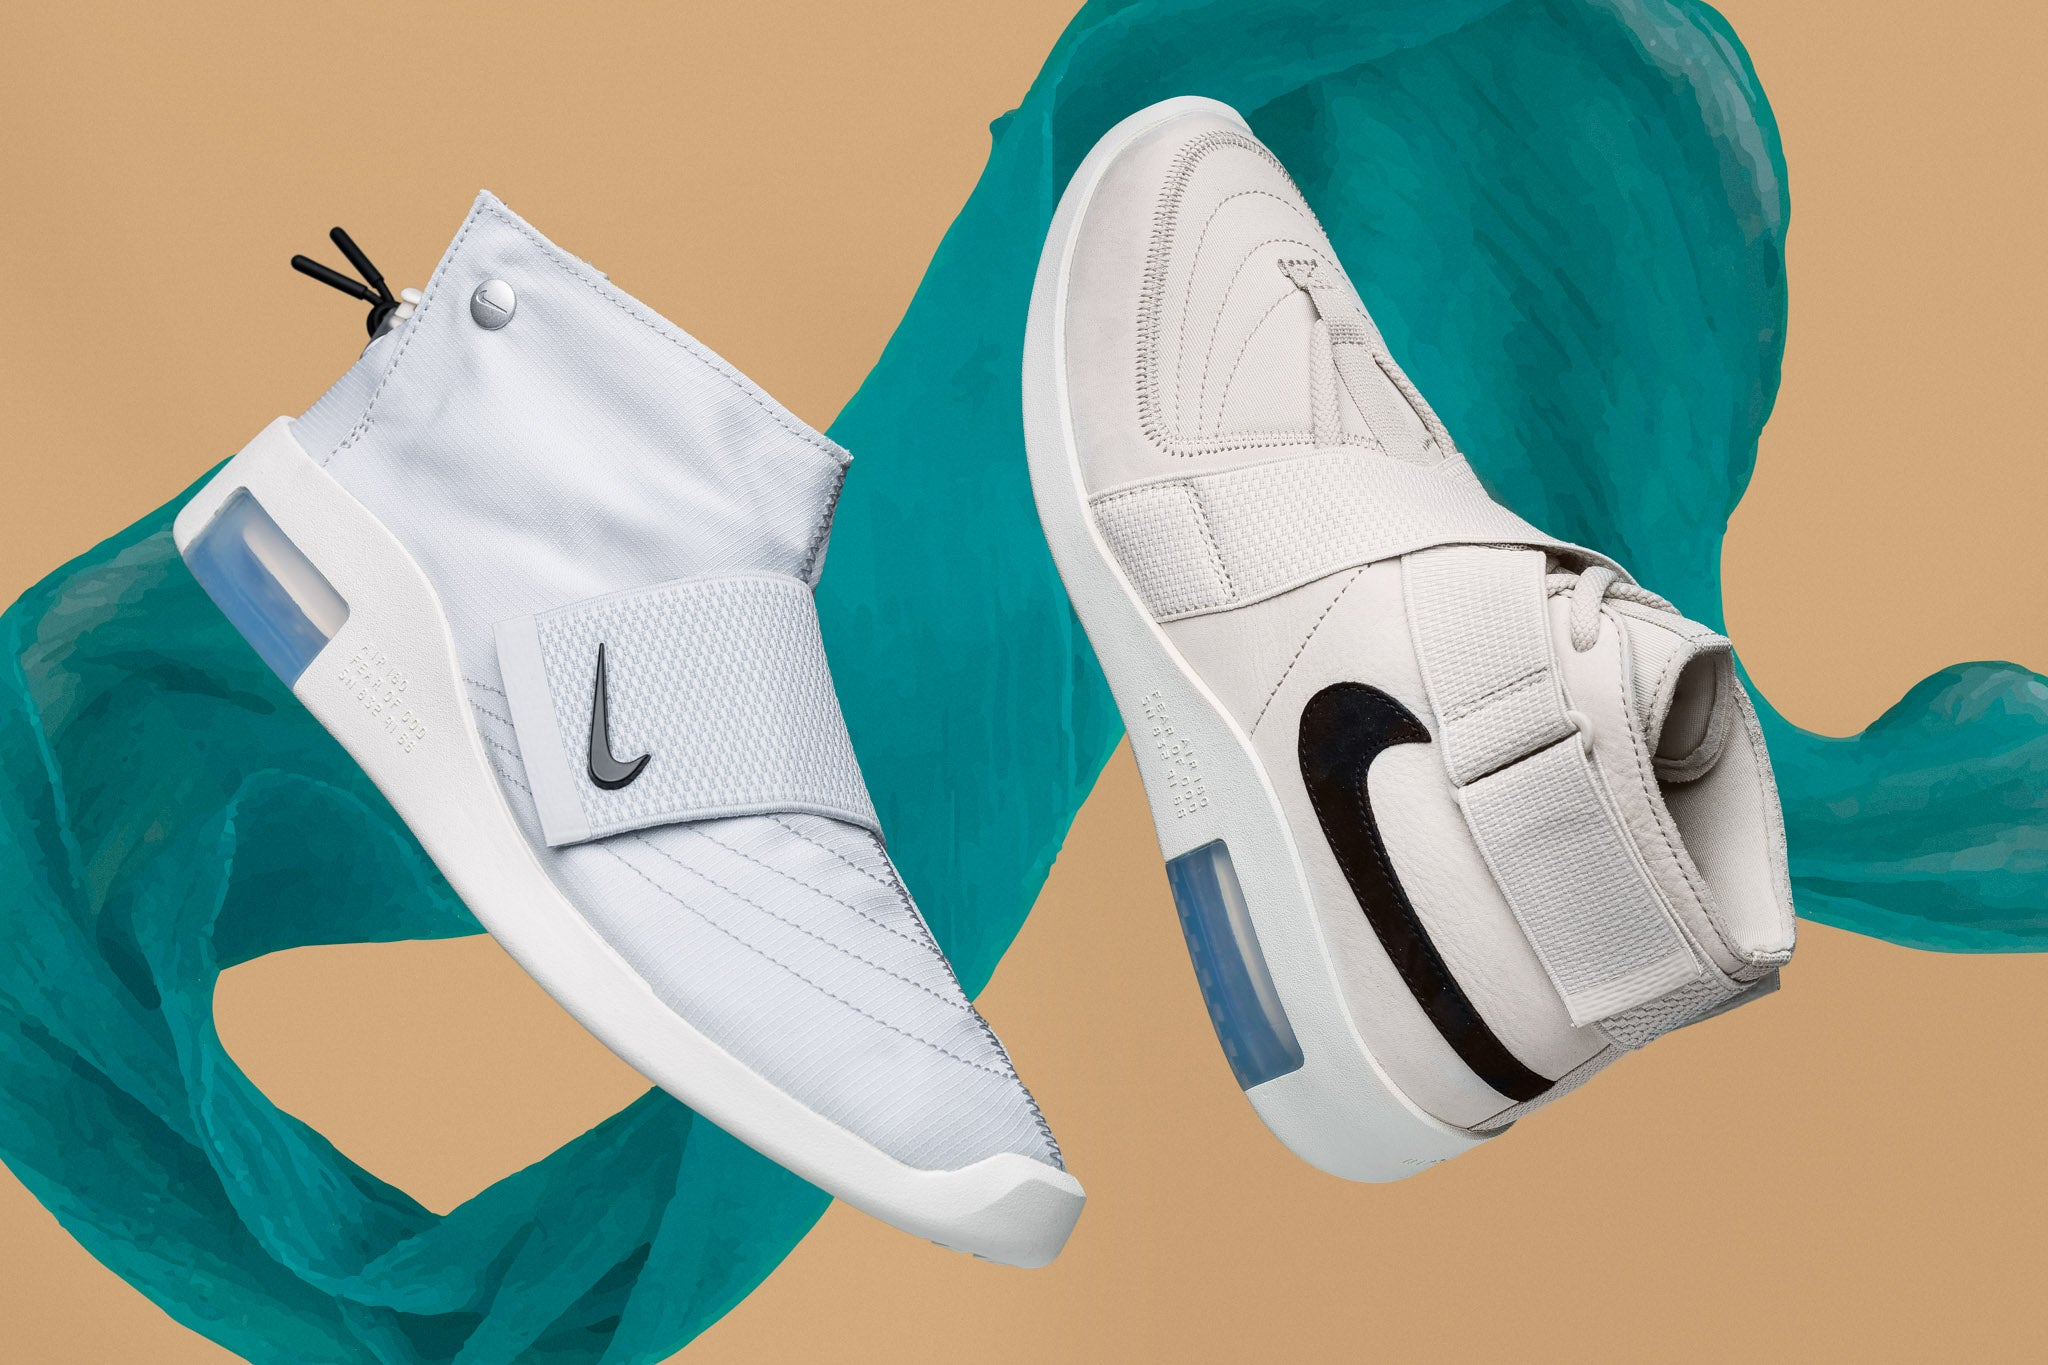 sports shoes 81967 ffb38 Fear Of God founder Jerry Lorenzo offers us a high-end take on his footwear  favourite, the 1993 Nike Air Raid that reflect Jerry s designer tastes  interbred ...